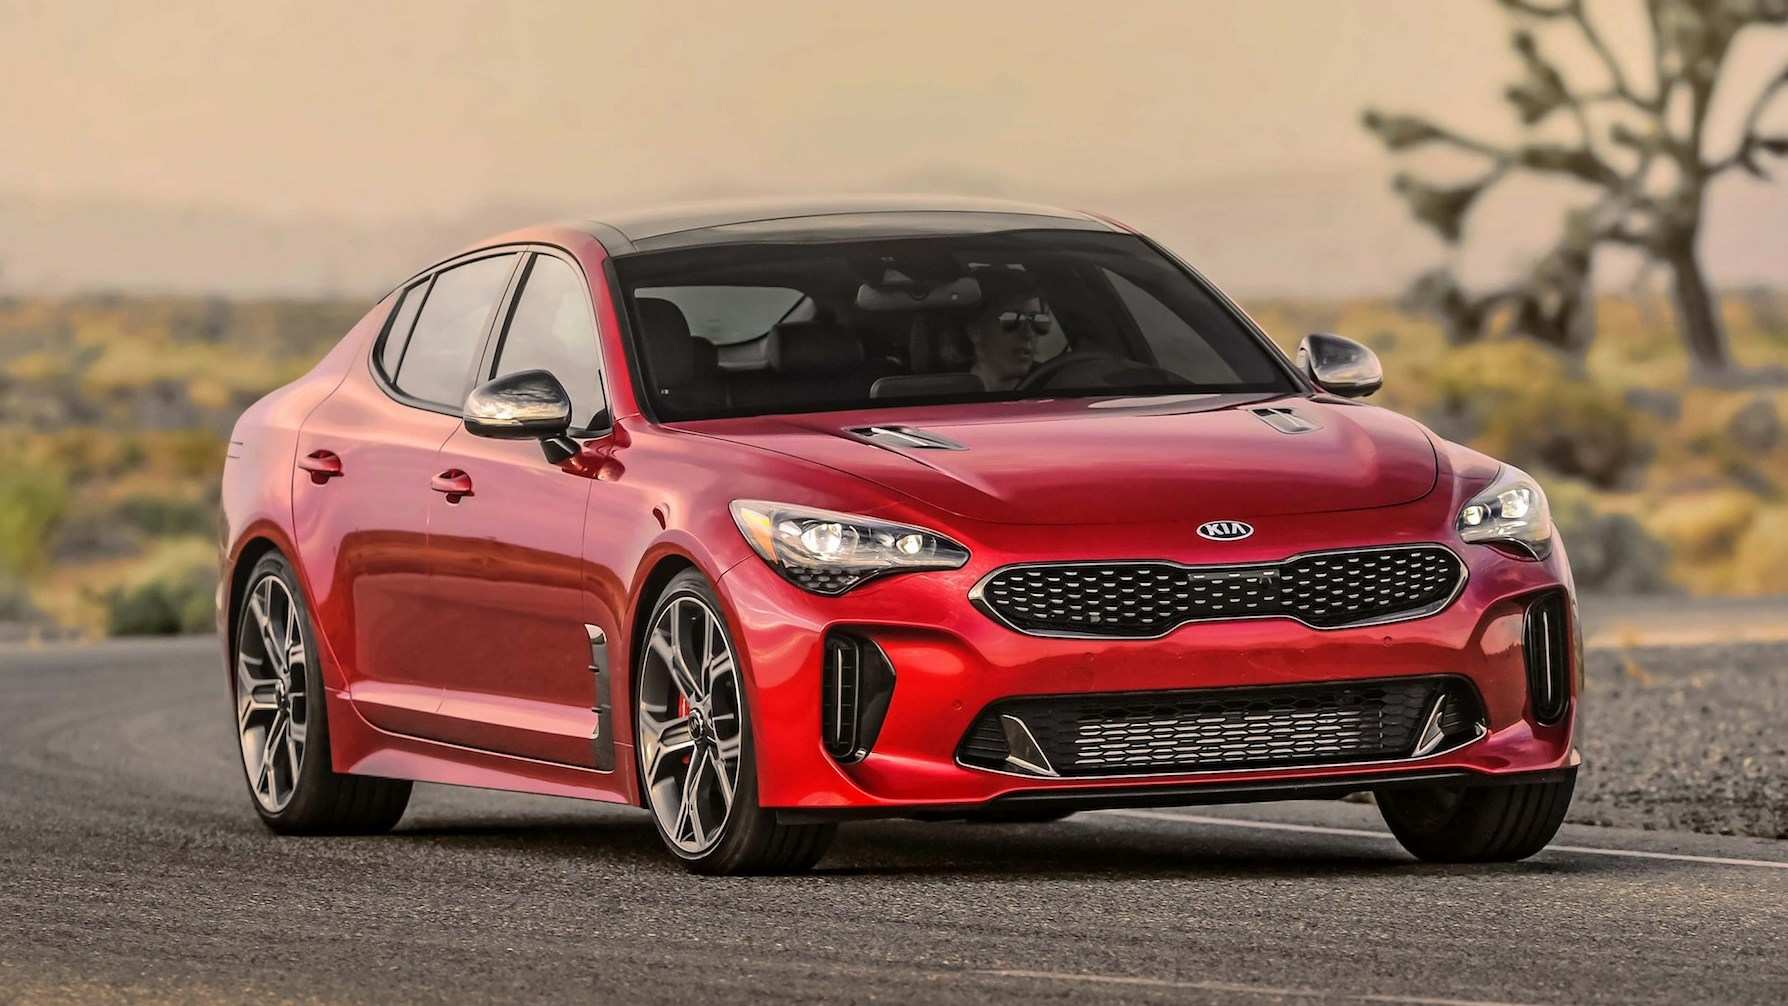 26 Great 2019 Kia Gt Atlantica Exterior Redesign and Concept for 2019 Kia Gt Atlantica Exterior